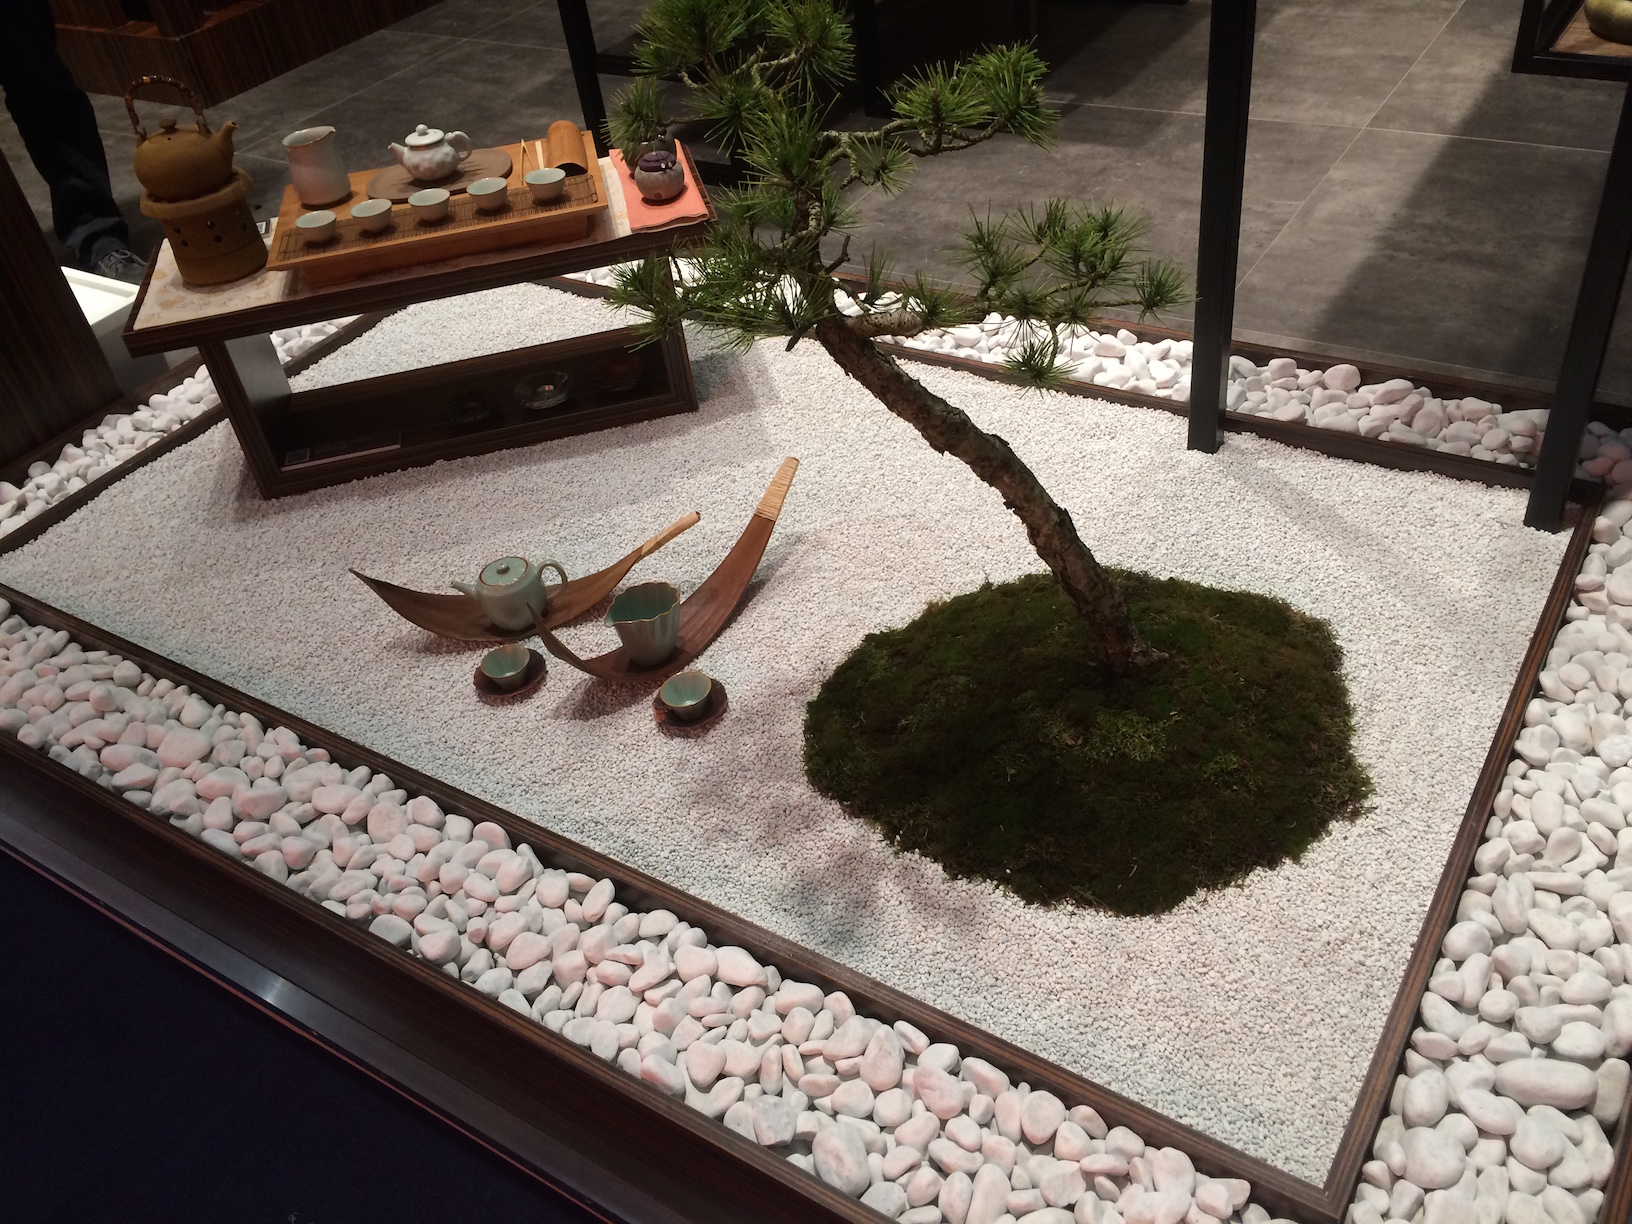 On y tait le salon des arts de la table de francfort for Jardin deco zen